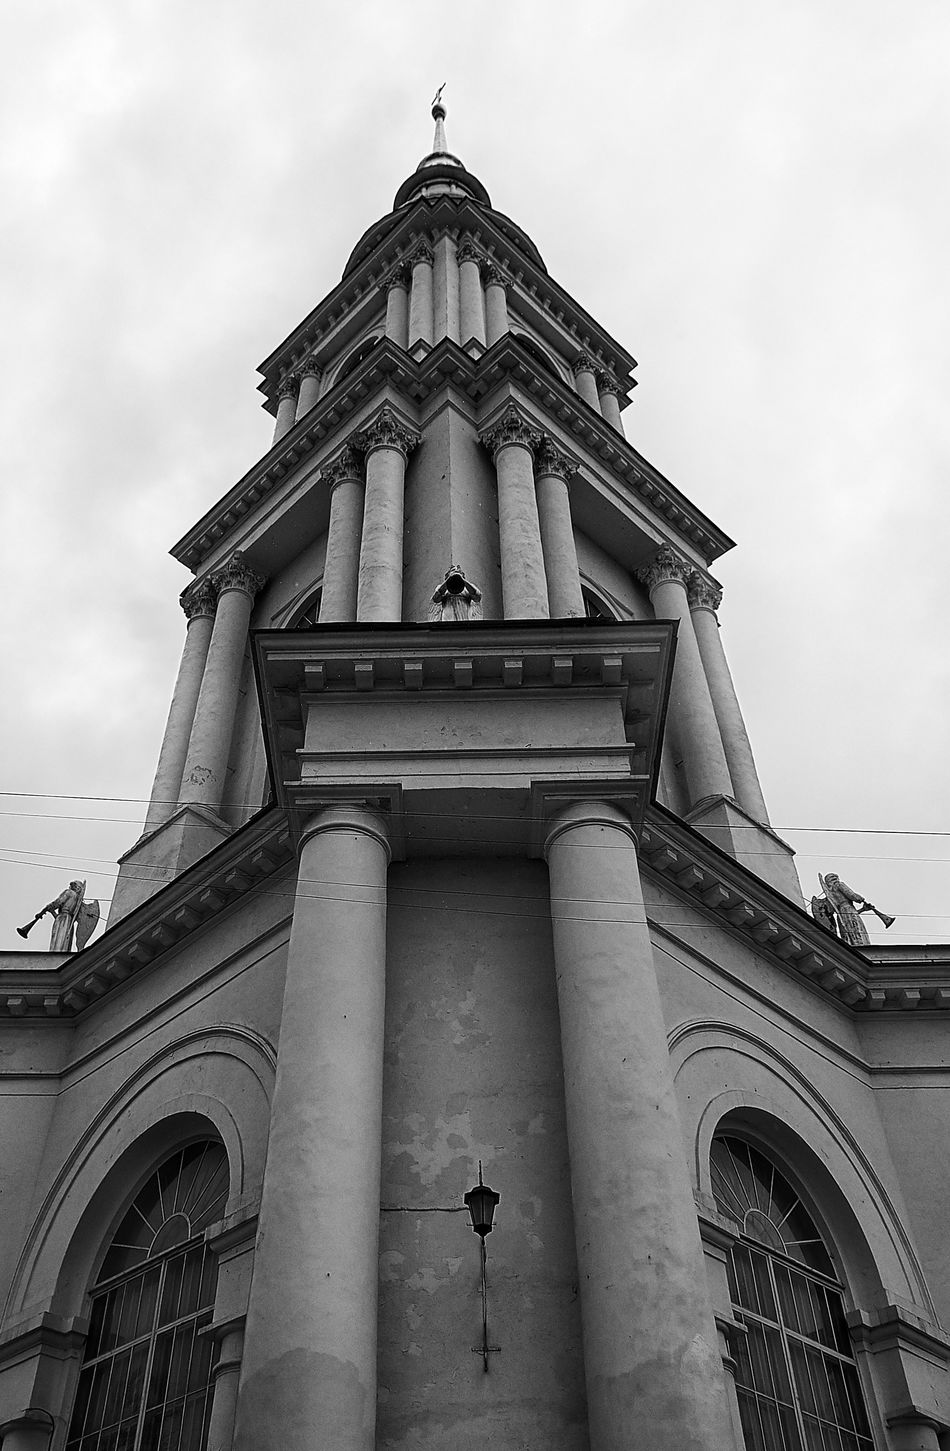 Russia Architecture Low Angle View Black And White Black & White Bw_collection Blackandwhite Blackandwhite Photography Black And White Photography Black&white Blackandwhitephotography Religion Outdoors Day